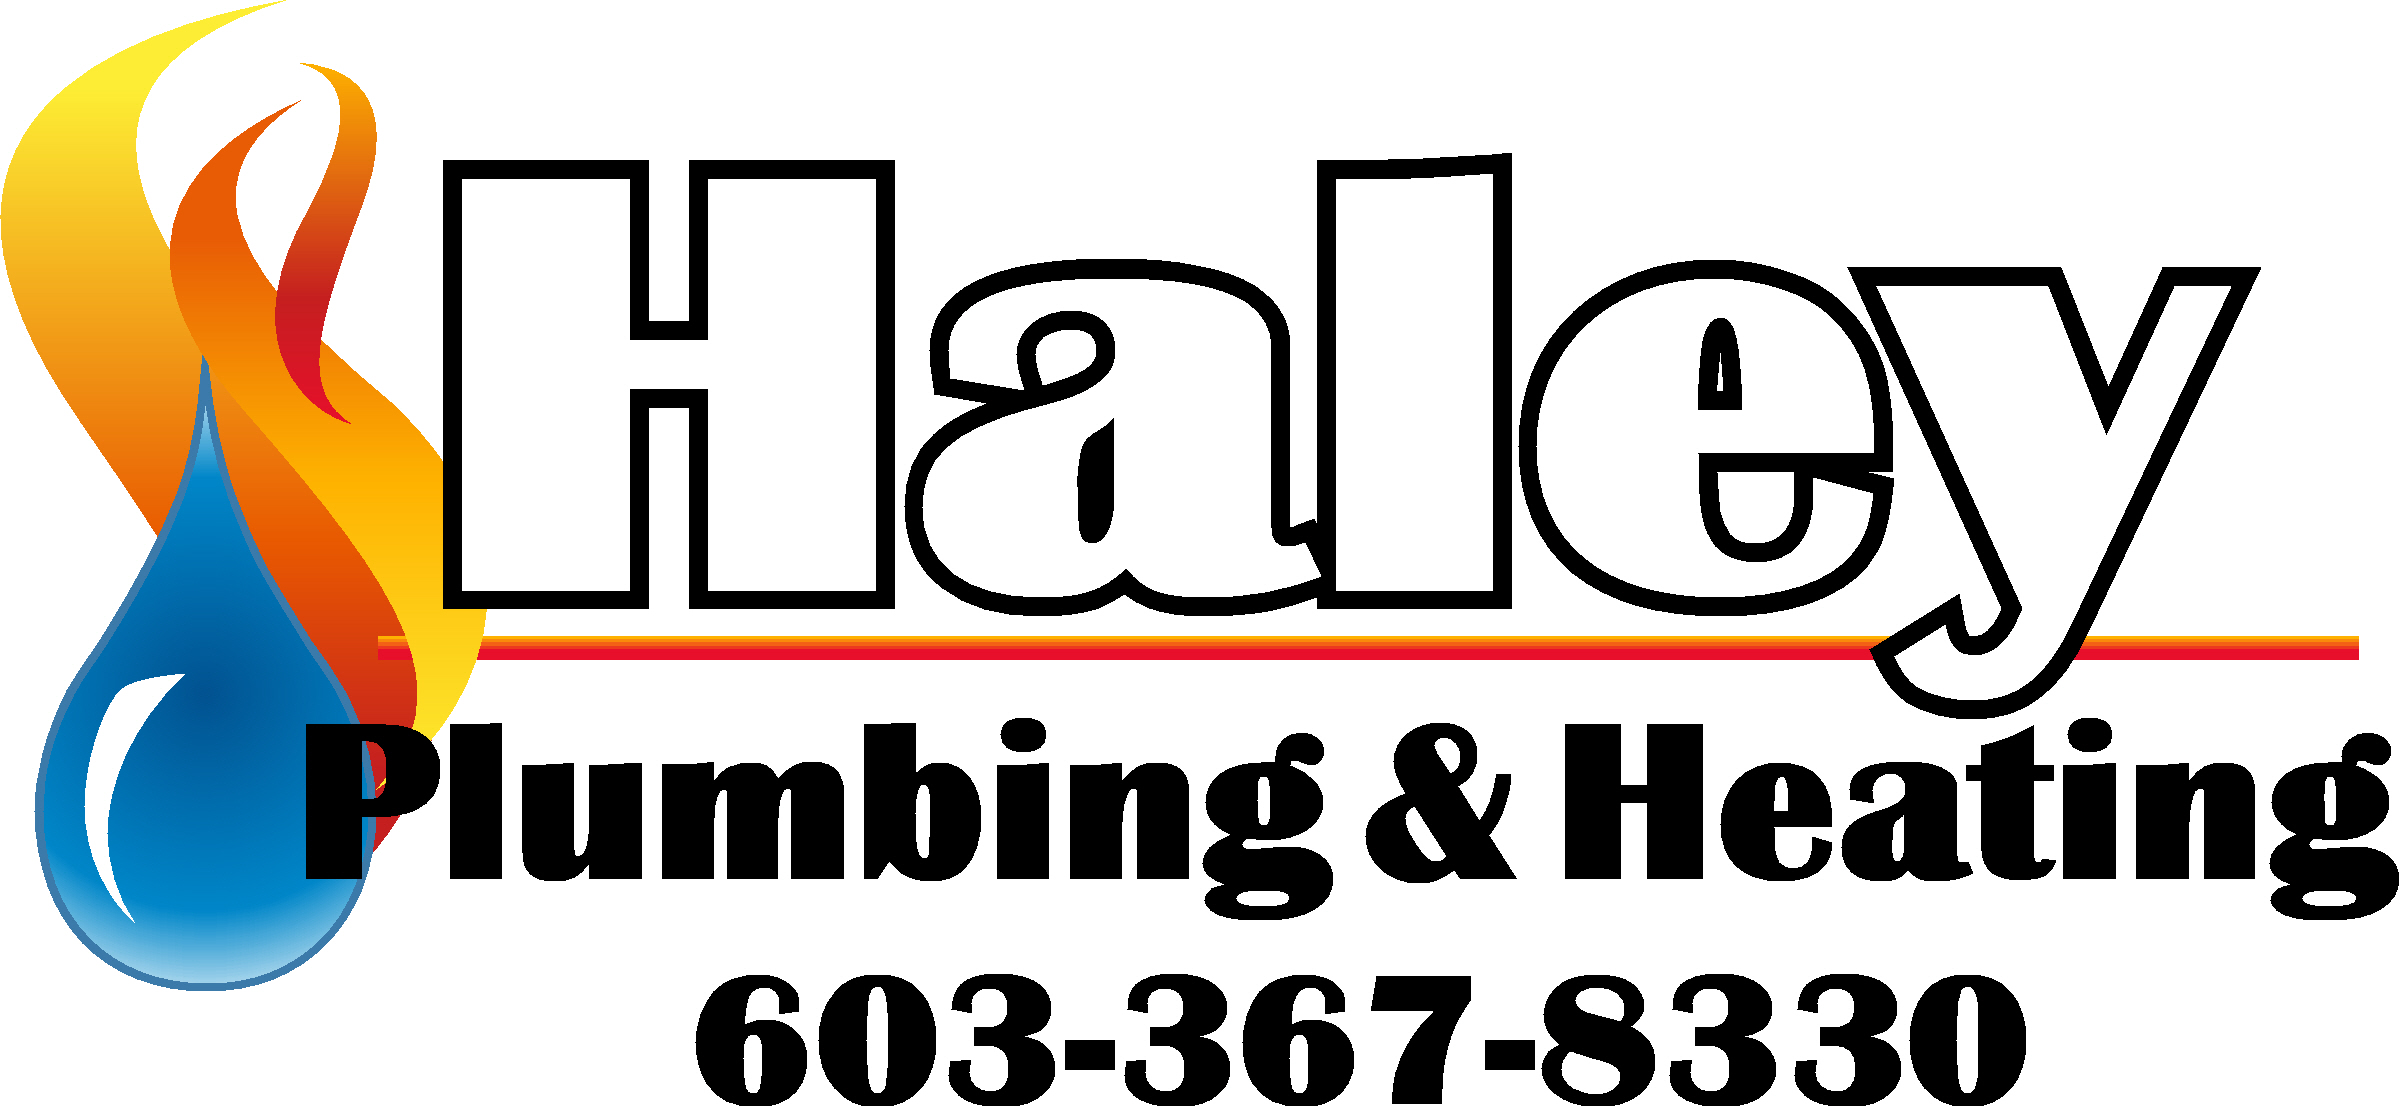 Haley+plumbing+and+heating.JPG